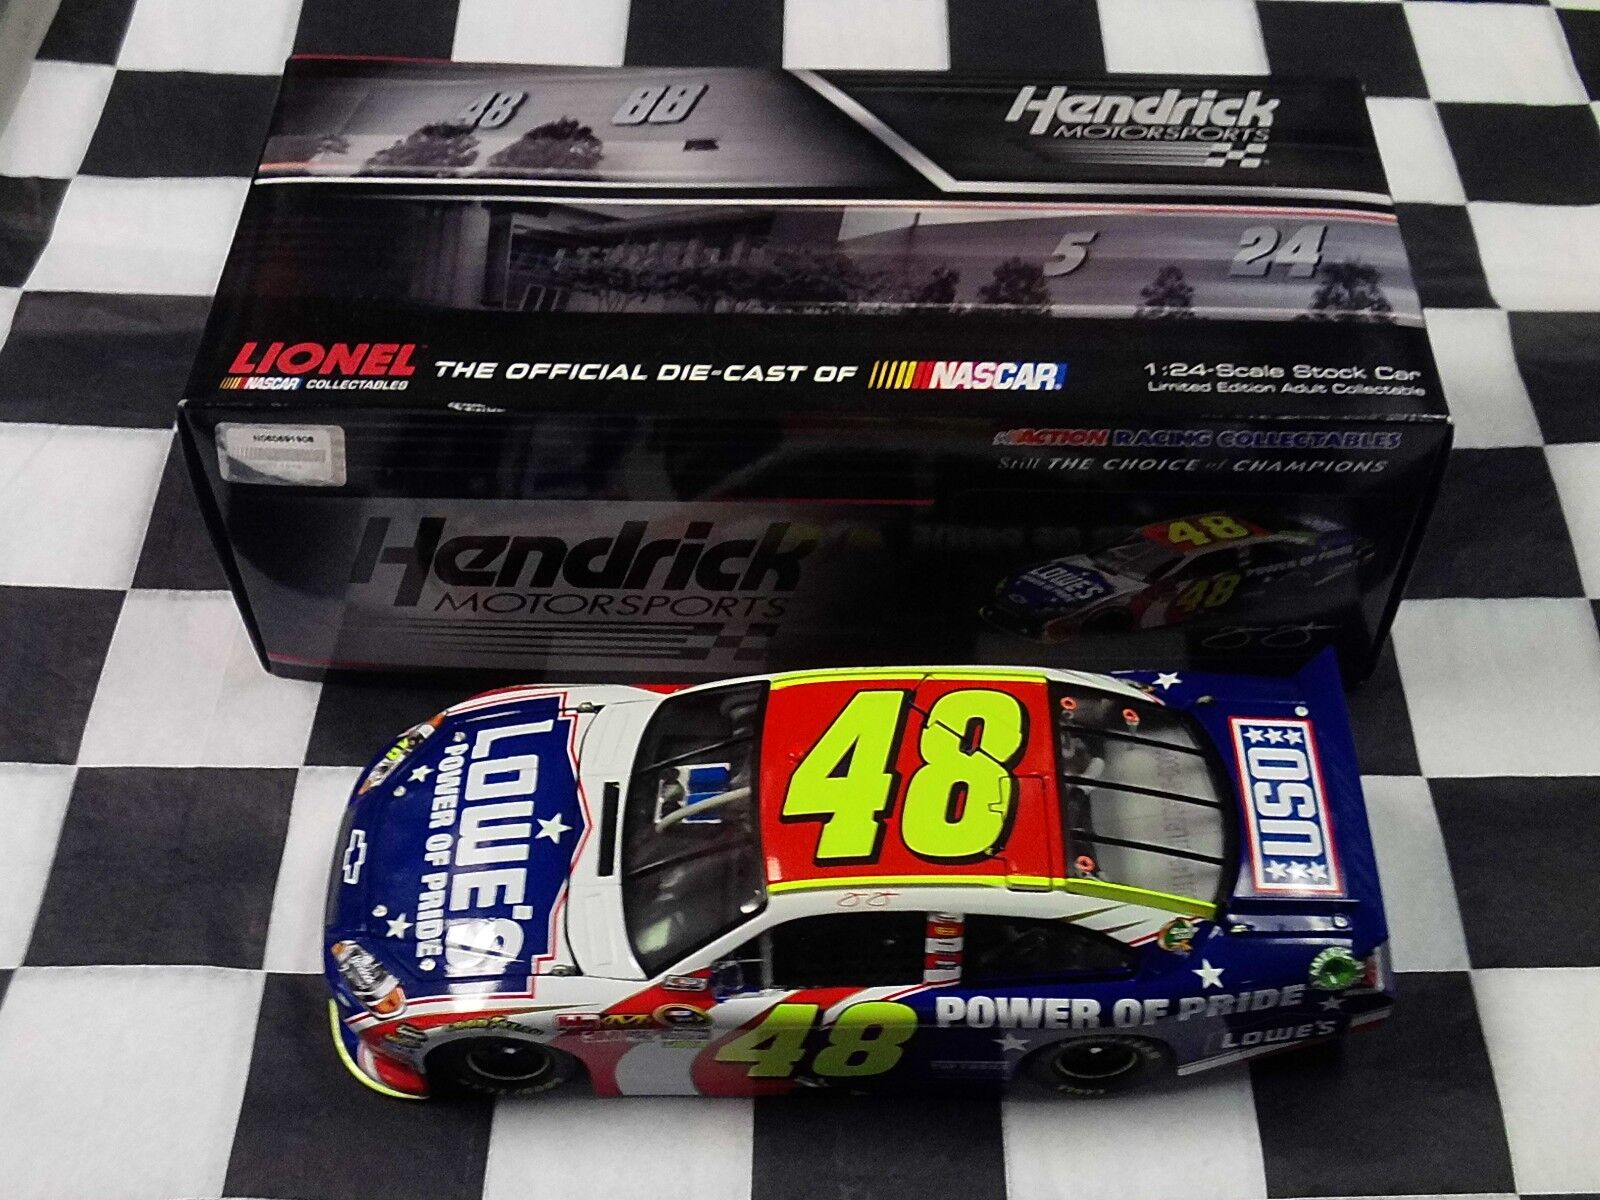 Jimmie Johnson  48 Faiblee's Power Of Pride  2011 Impala 1 24 Action nouveau IN BOX NASvoiture  en ligne pas cher